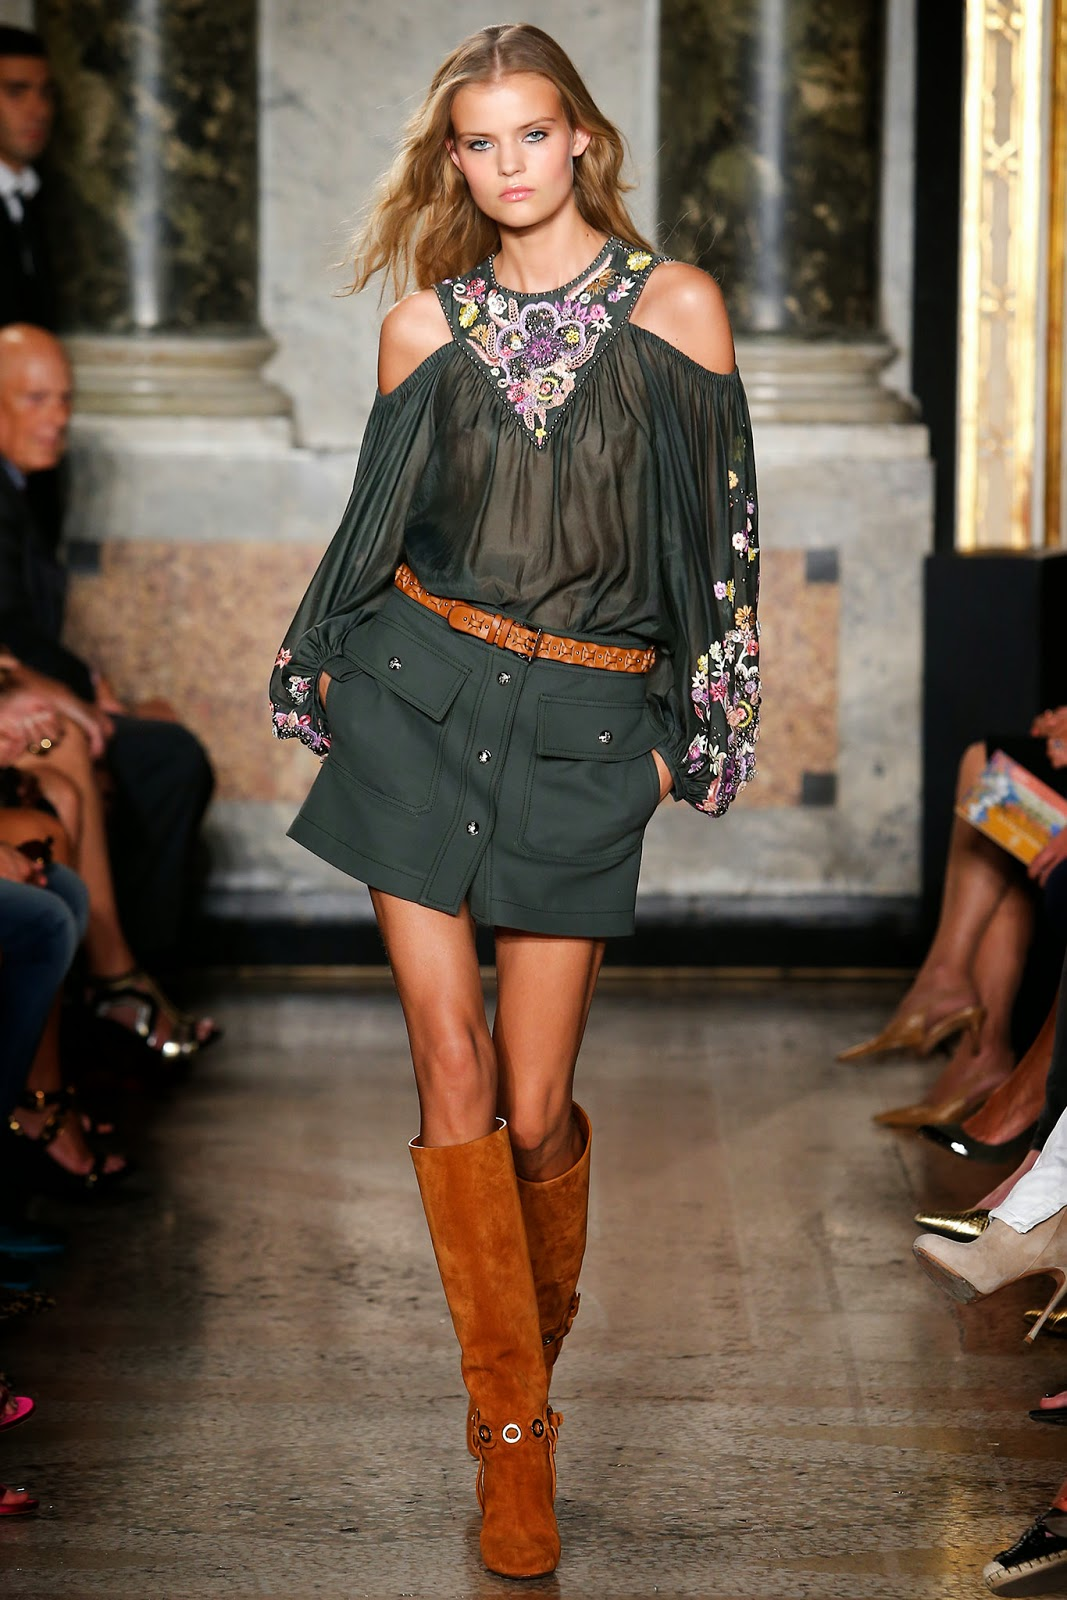 Concierge4fashion The Most Beautiful Girl In The World: Concierge4Fashion: Emilio Pucci Spring 2015 Ready-to-Wear